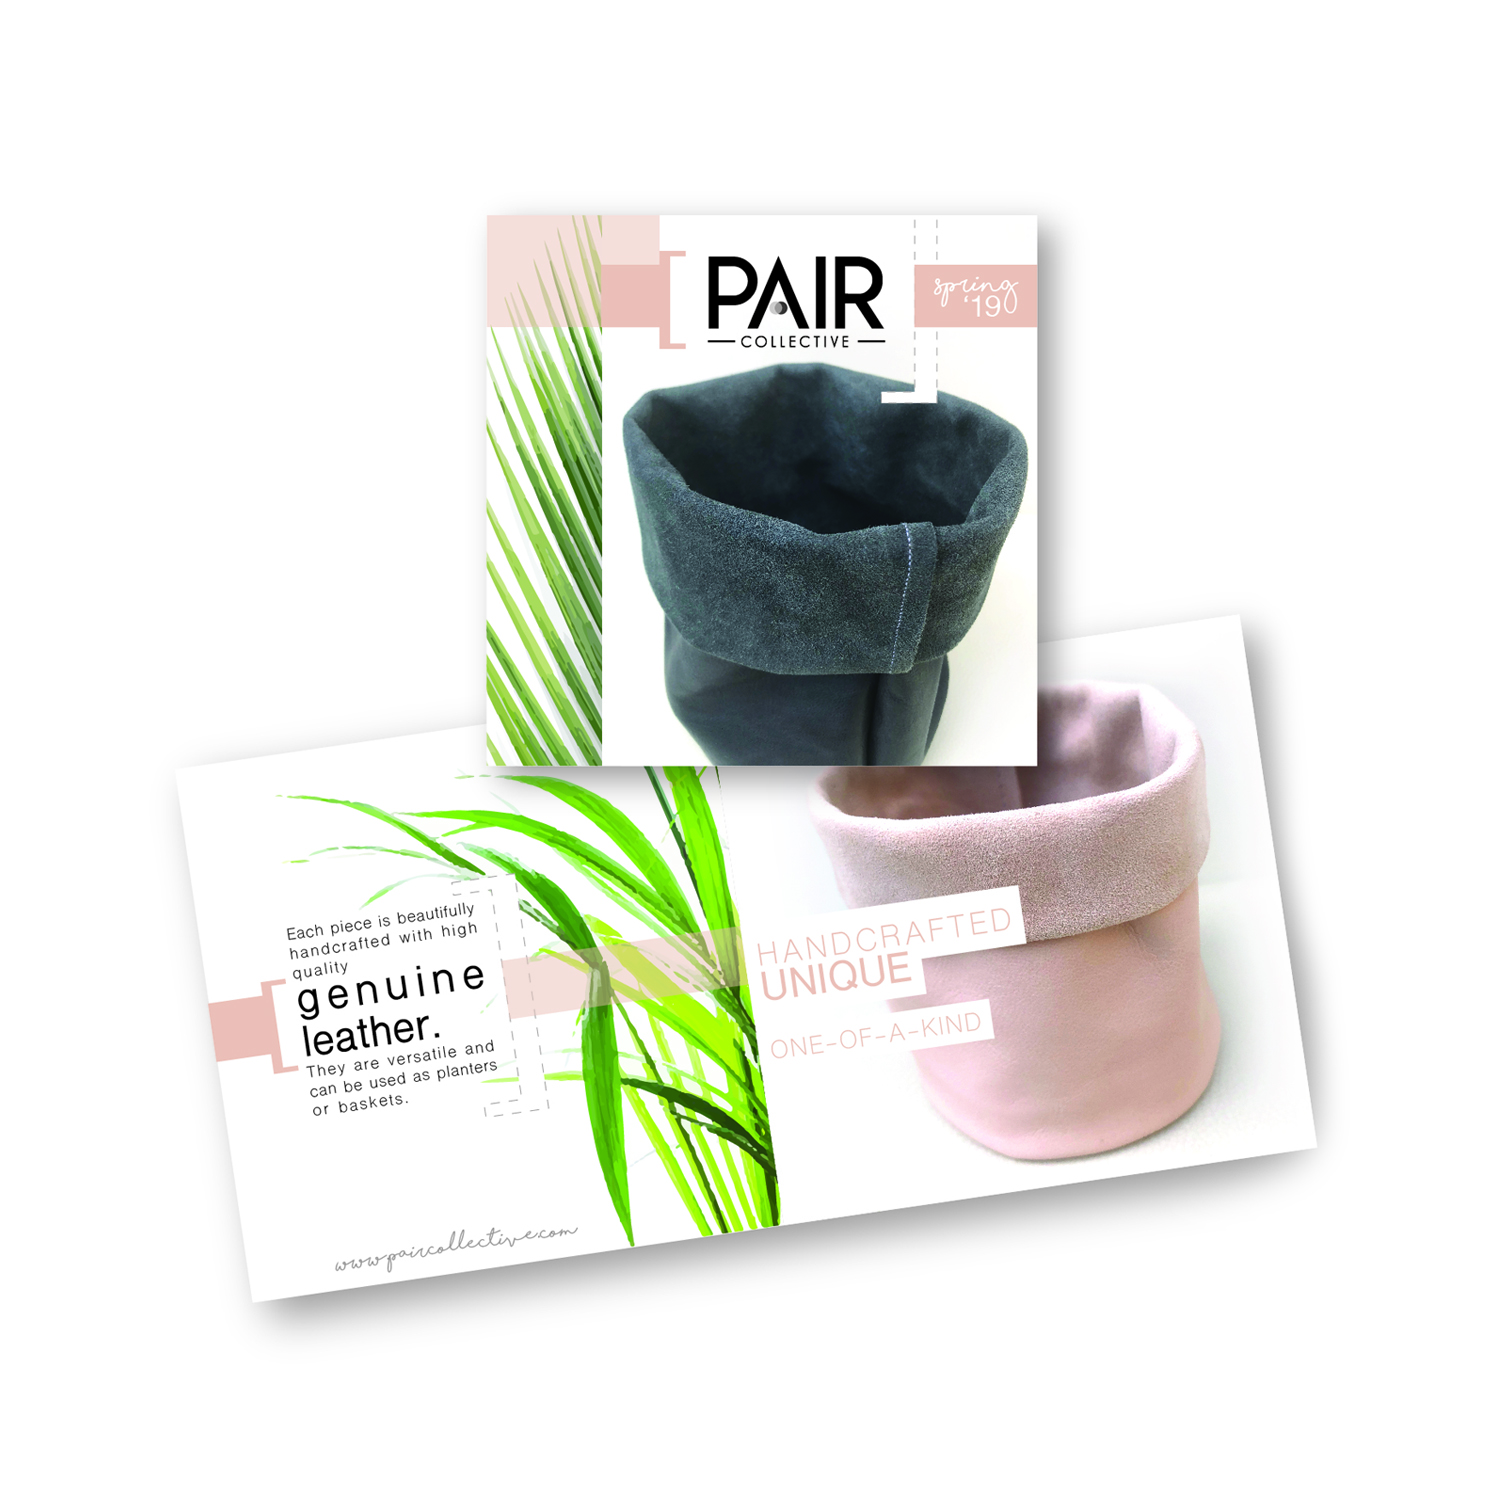 pair_collective-01.jpg